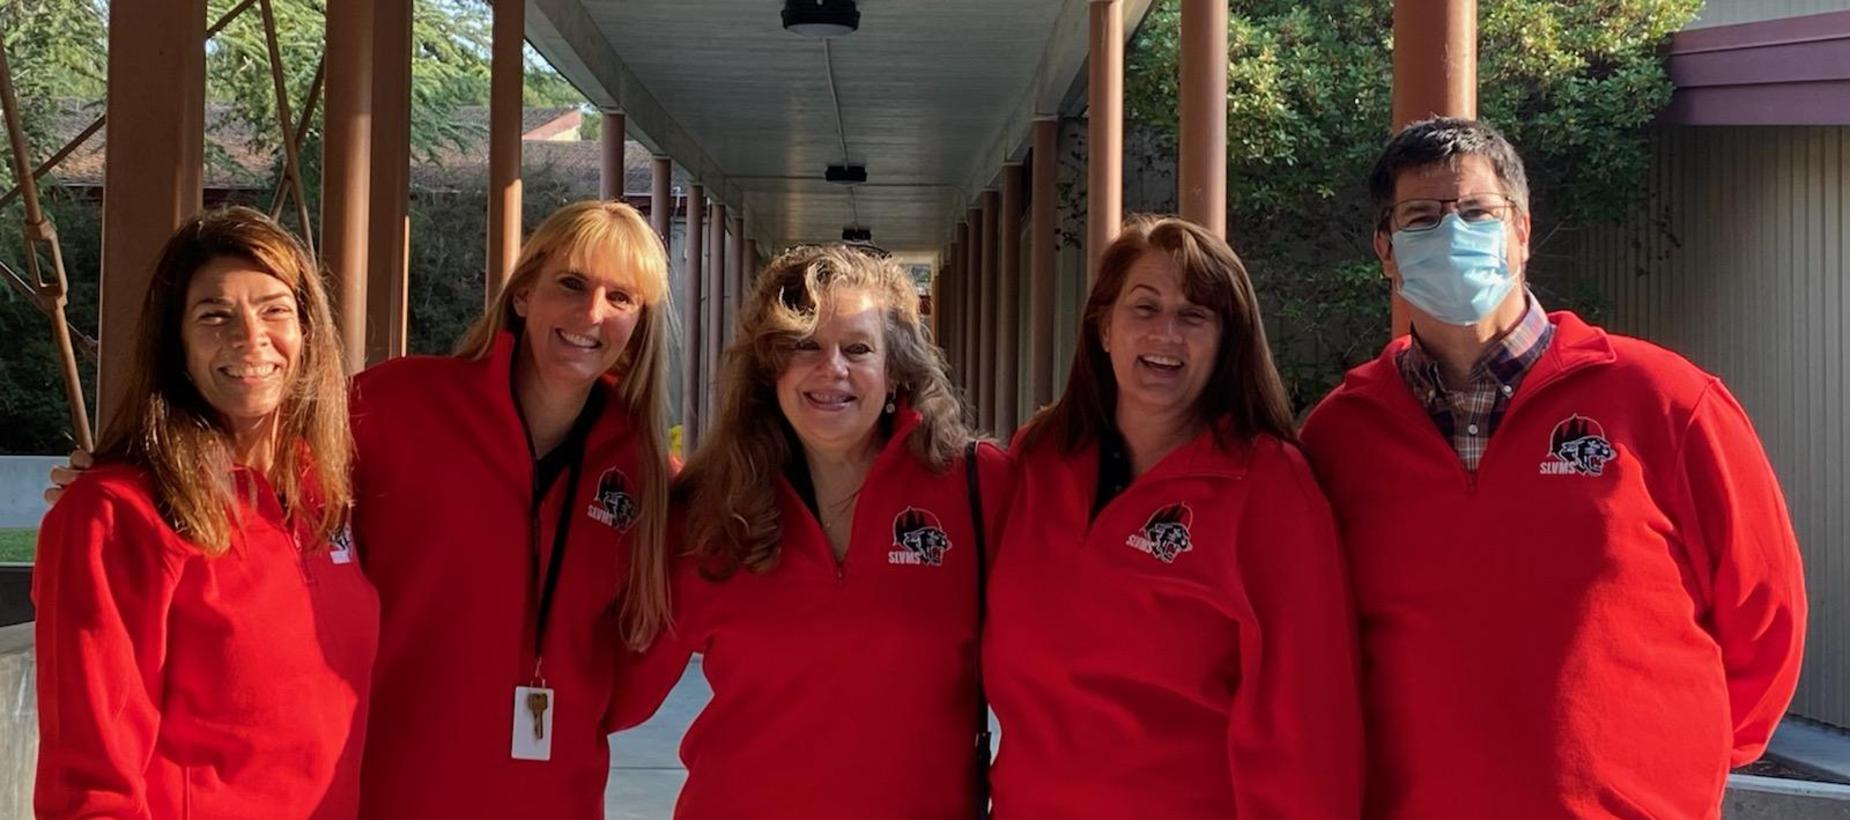 SLVMS Staff at Opening Day 2021